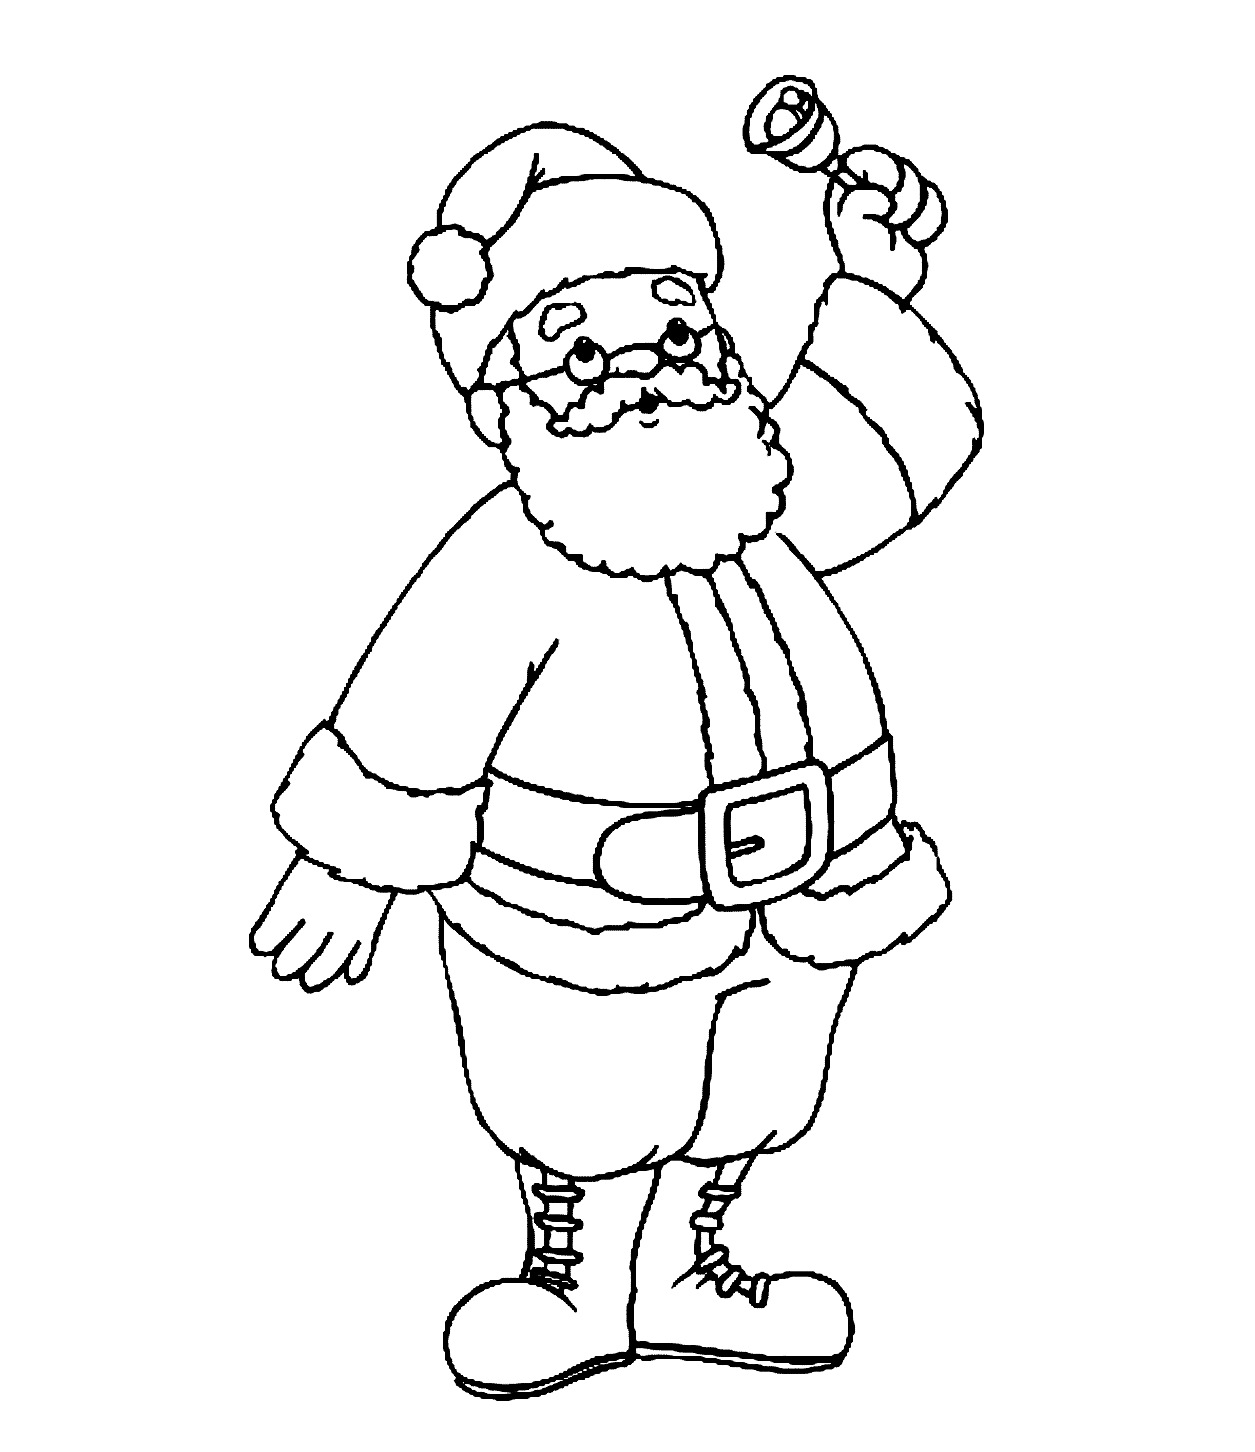 1255 x 1452 jpeg 182kB, Father Christmas Colouring Pictures - Cliparts ...